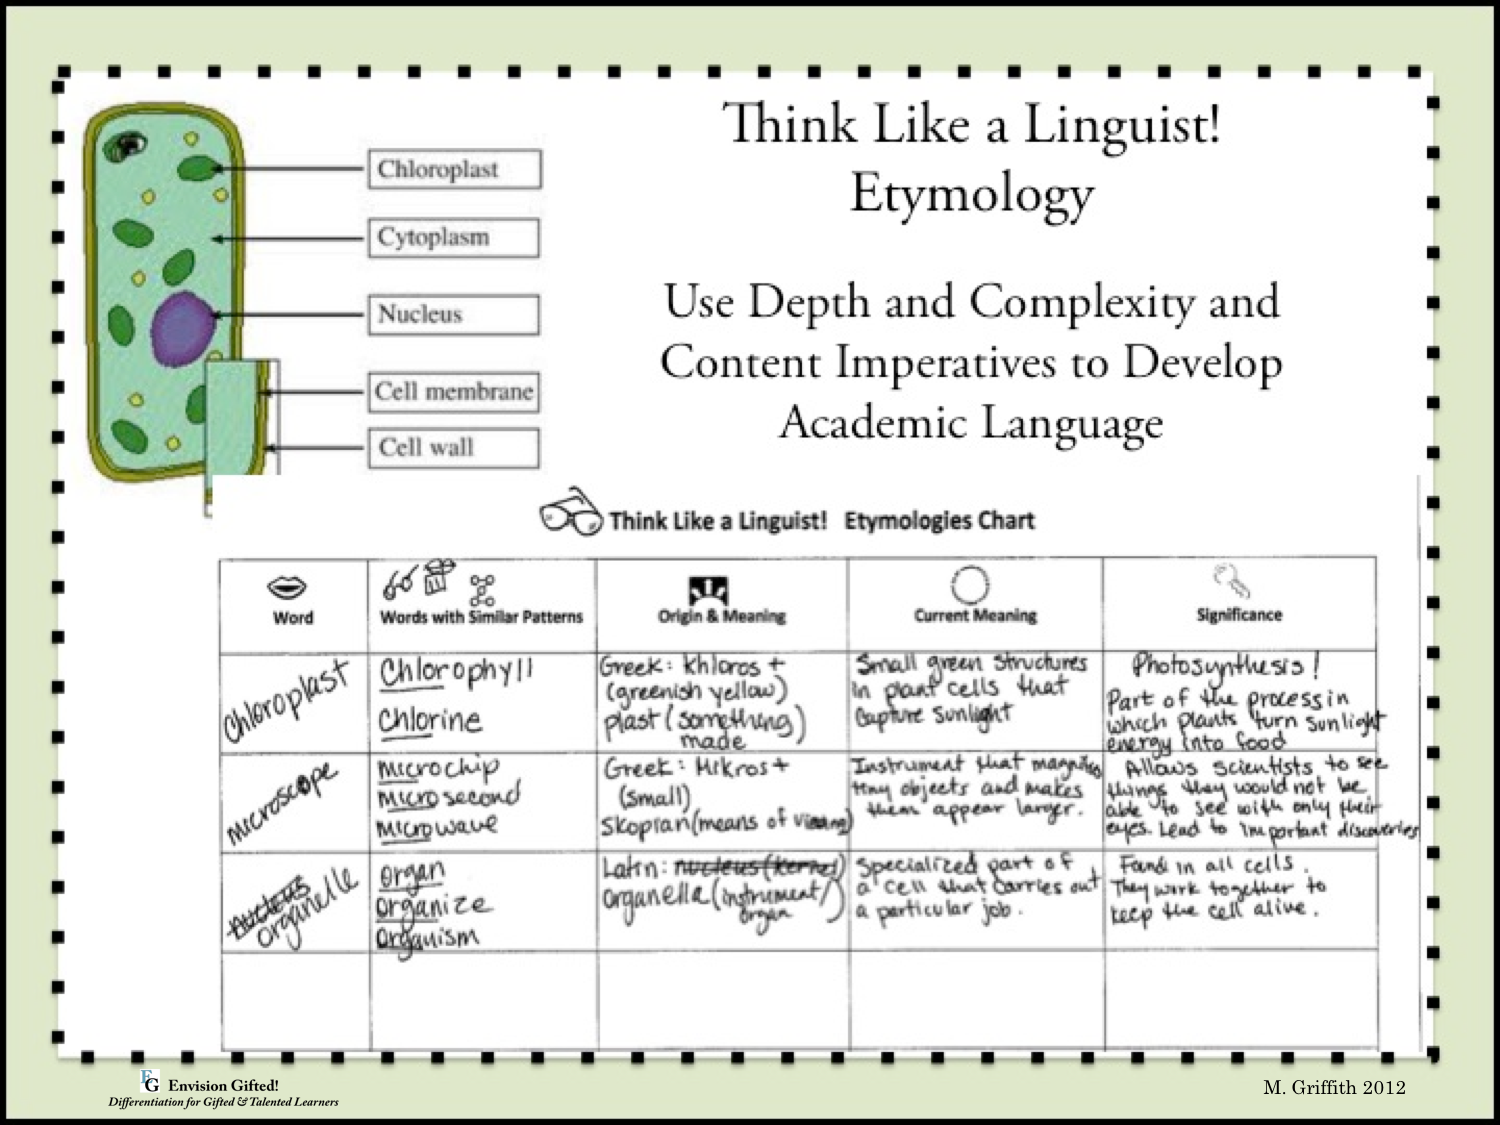 Envision Gifted. hink LIke a Linguist Etymology